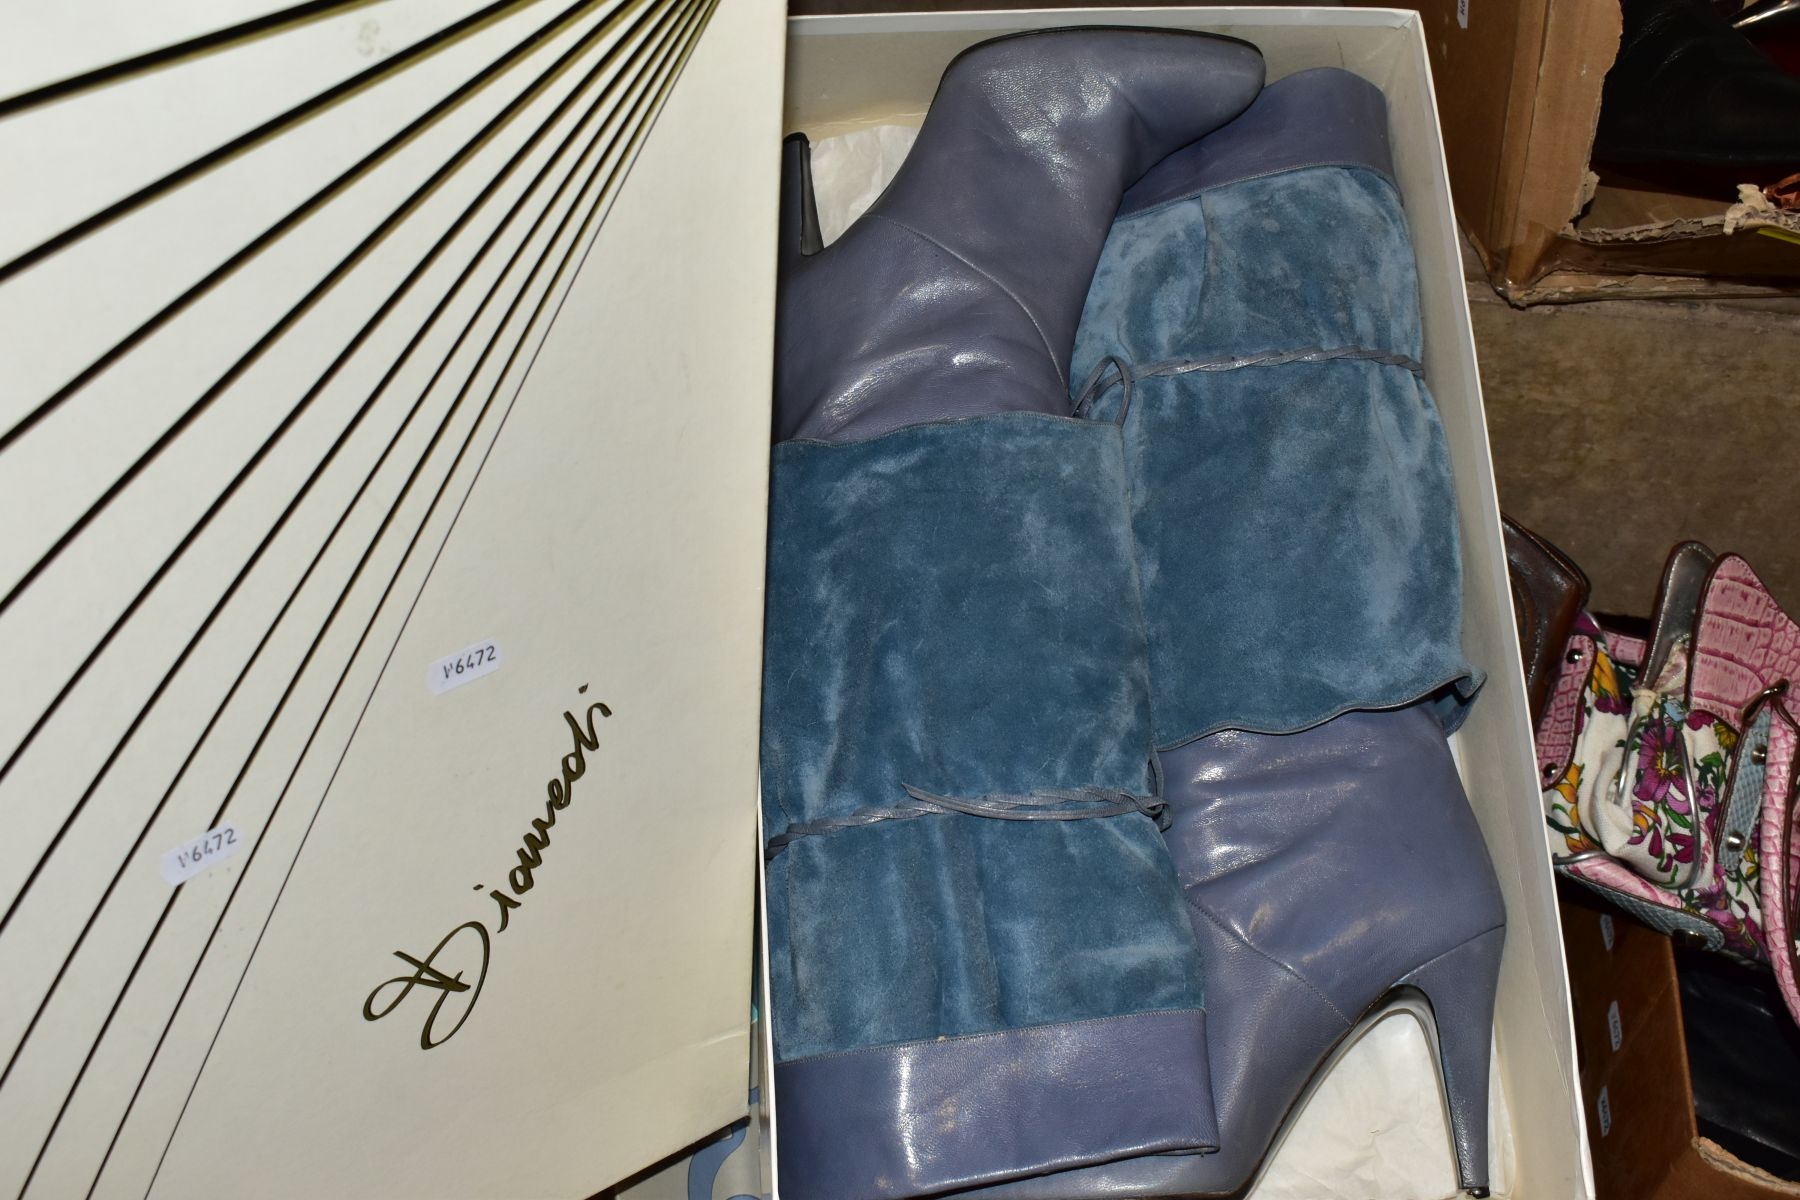 A QUANTITY OF LADIES SHOES AND HANDBAGS, EVENING BAGS, BOXED AND LOOSE, including a boxed pair of - Image 7 of 7